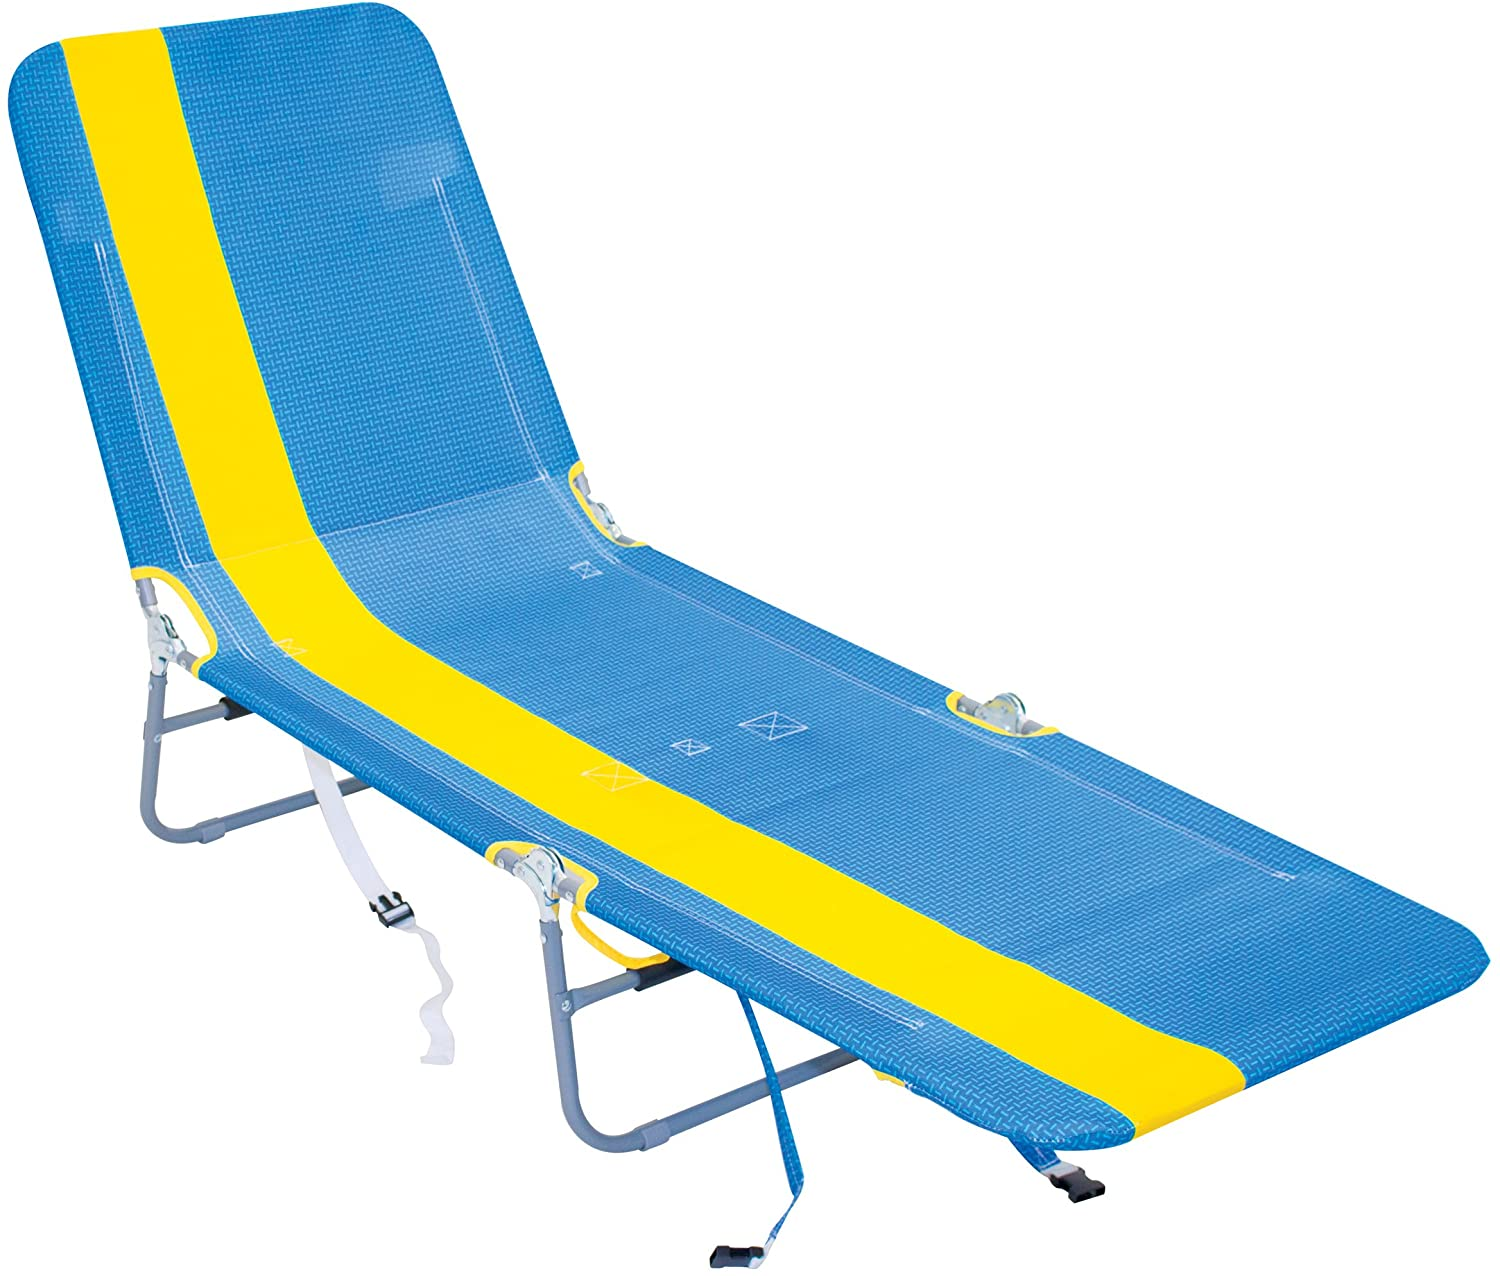 RIO Beach Polyester Foldable Beach Lounge Chair